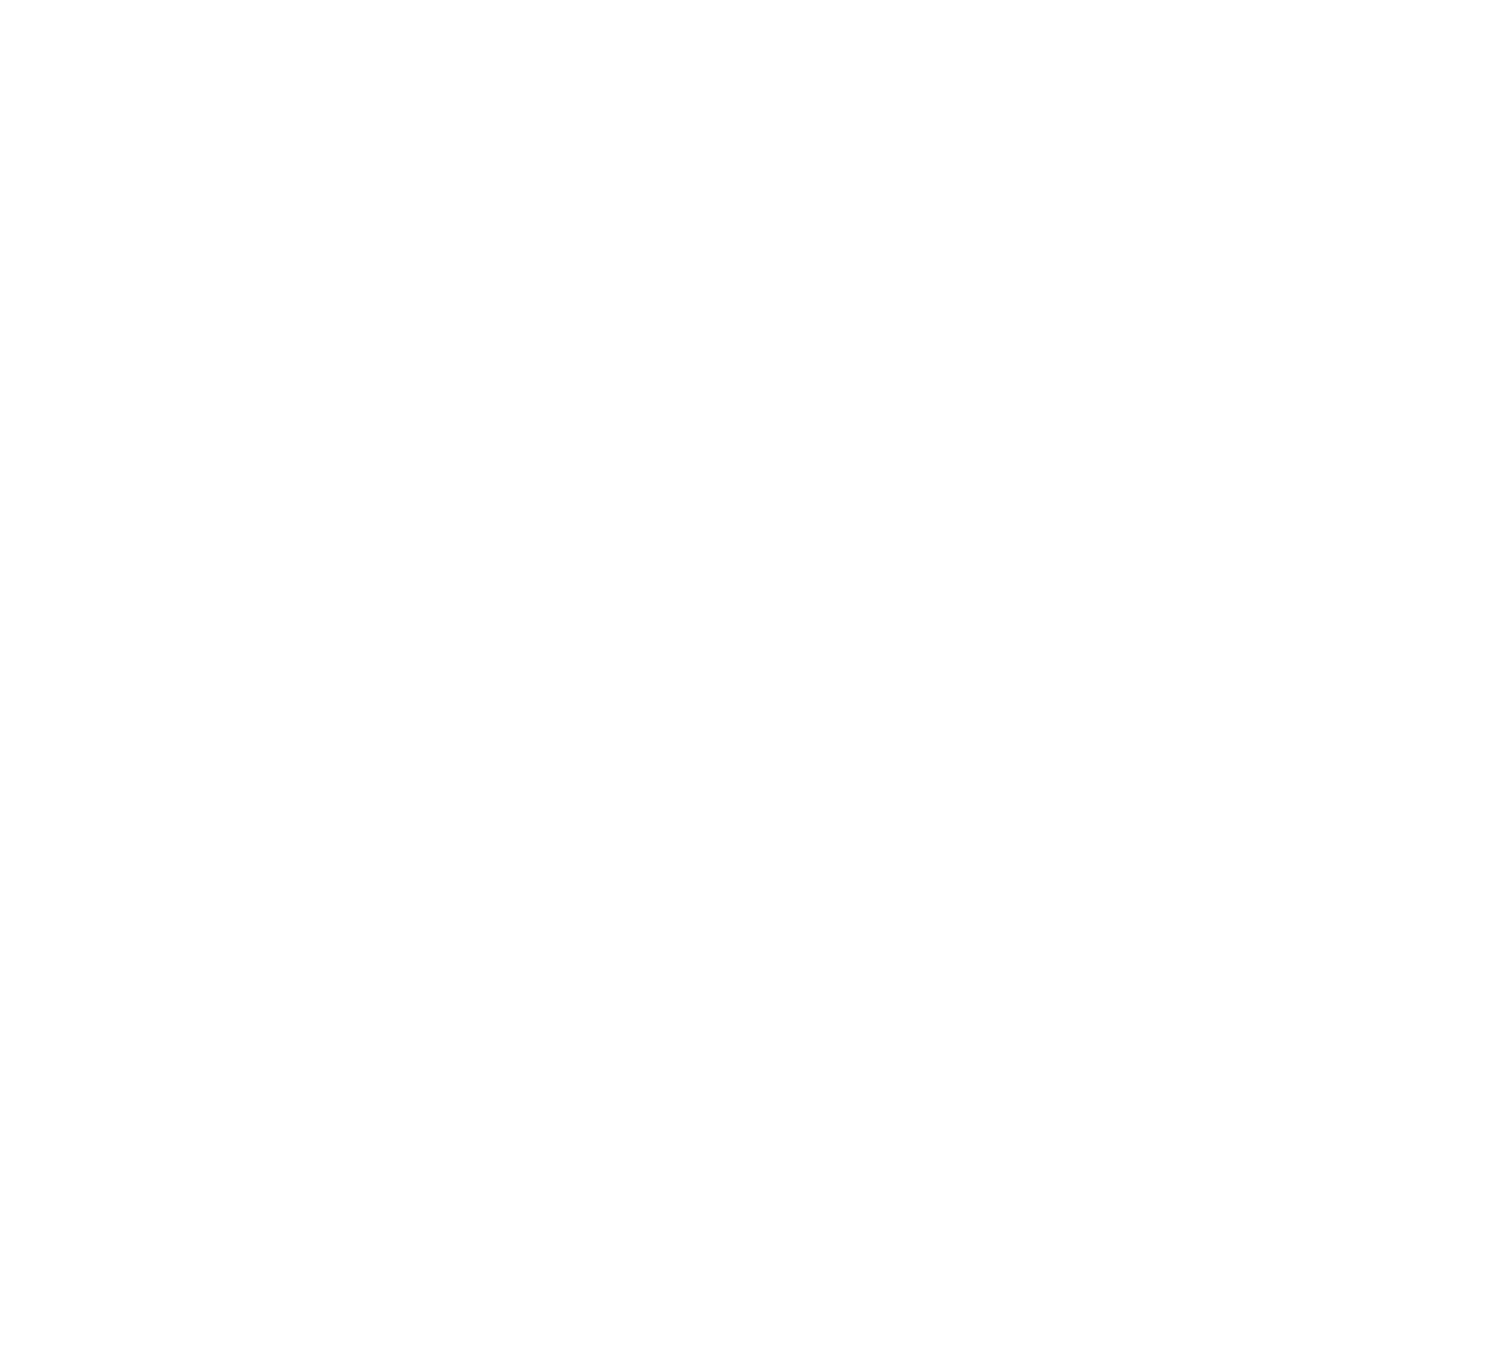 The Wildfire initiative